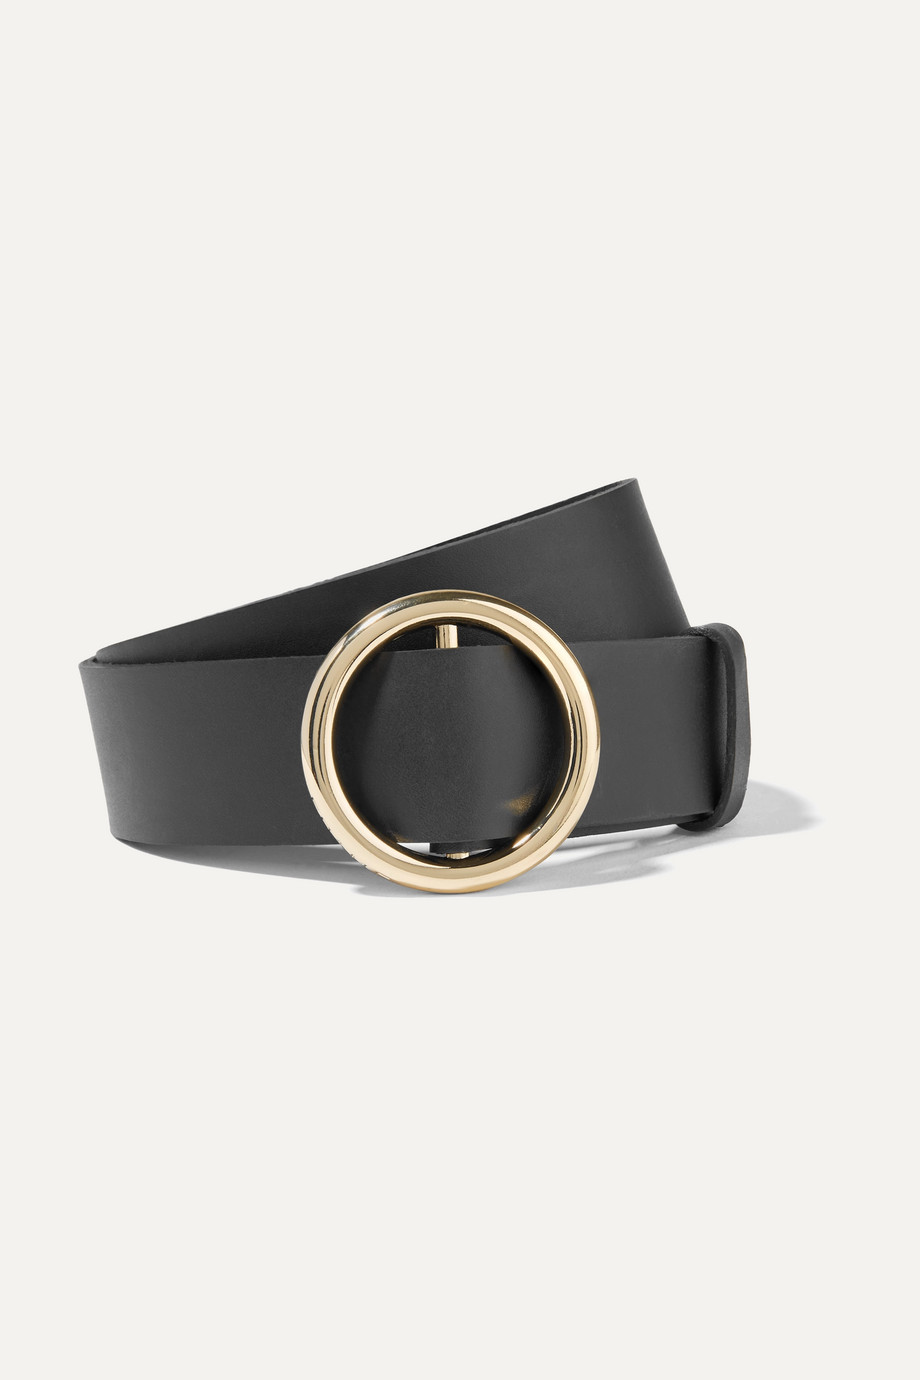 FRAME Le Circle leather belt